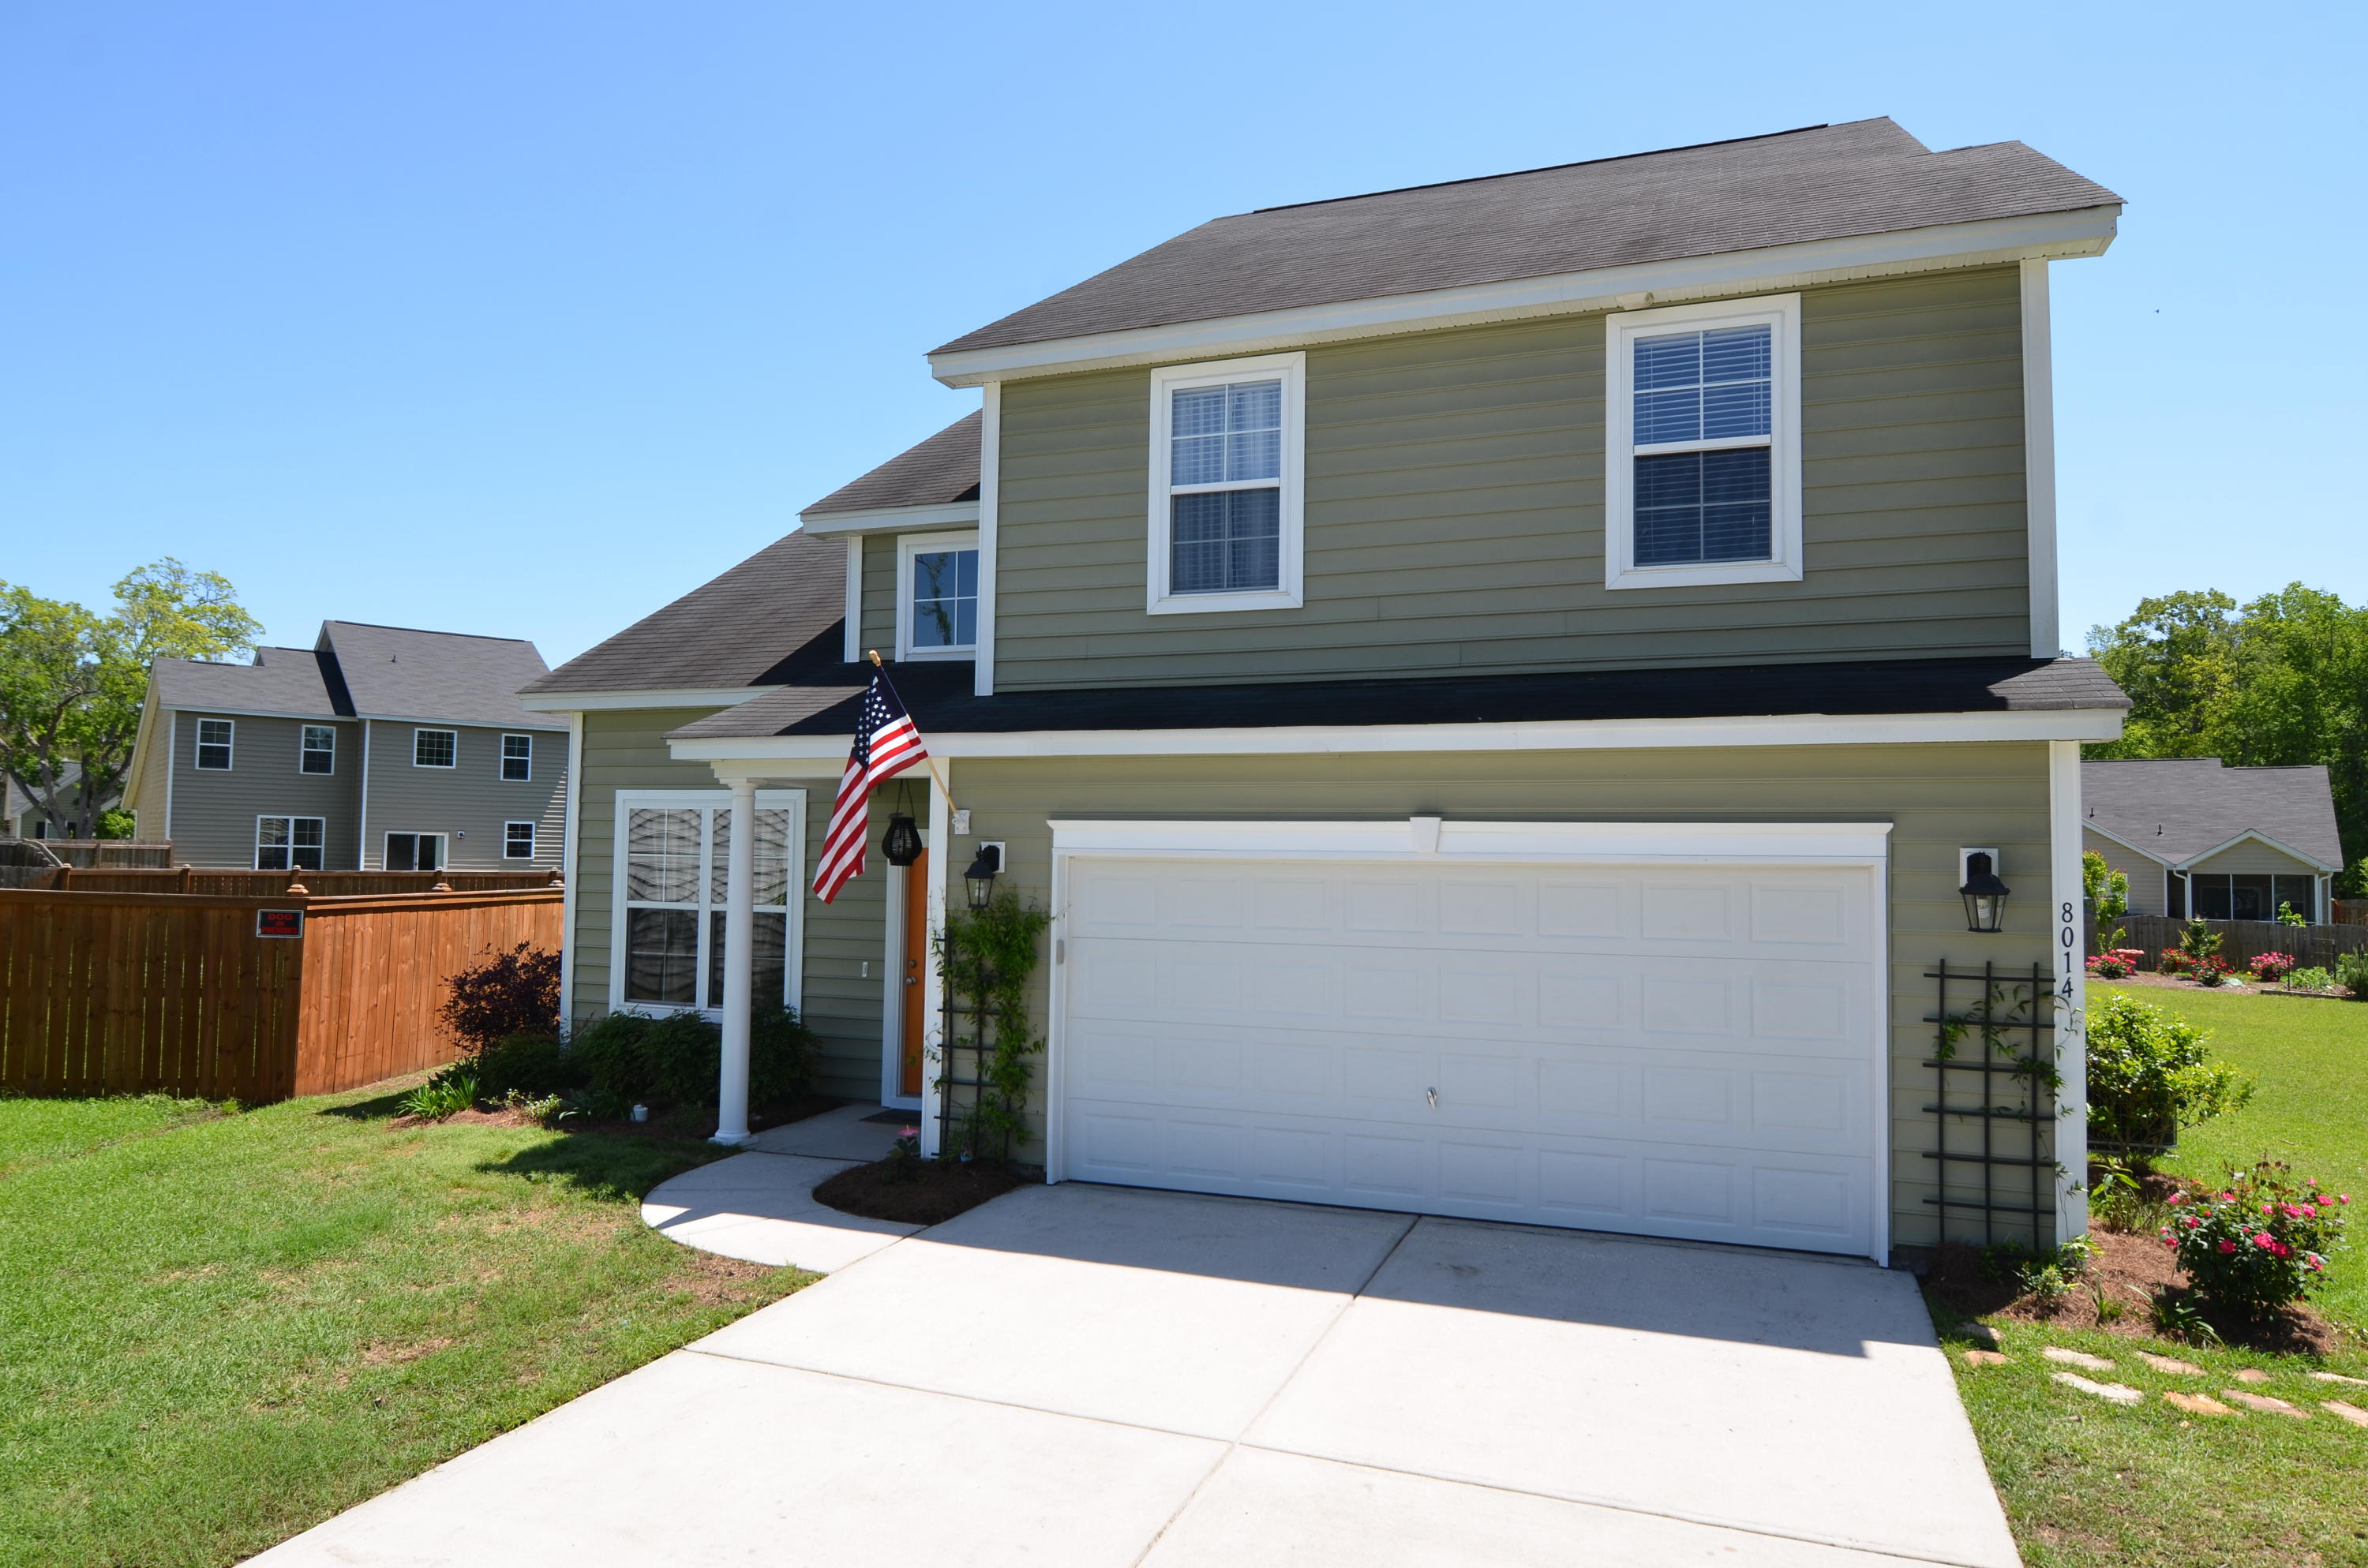 Outstanding 8014 Hyannis Court North Charleston Sc 29420 Mls 15010683 Home Interior And Landscaping Transignezvosmurscom